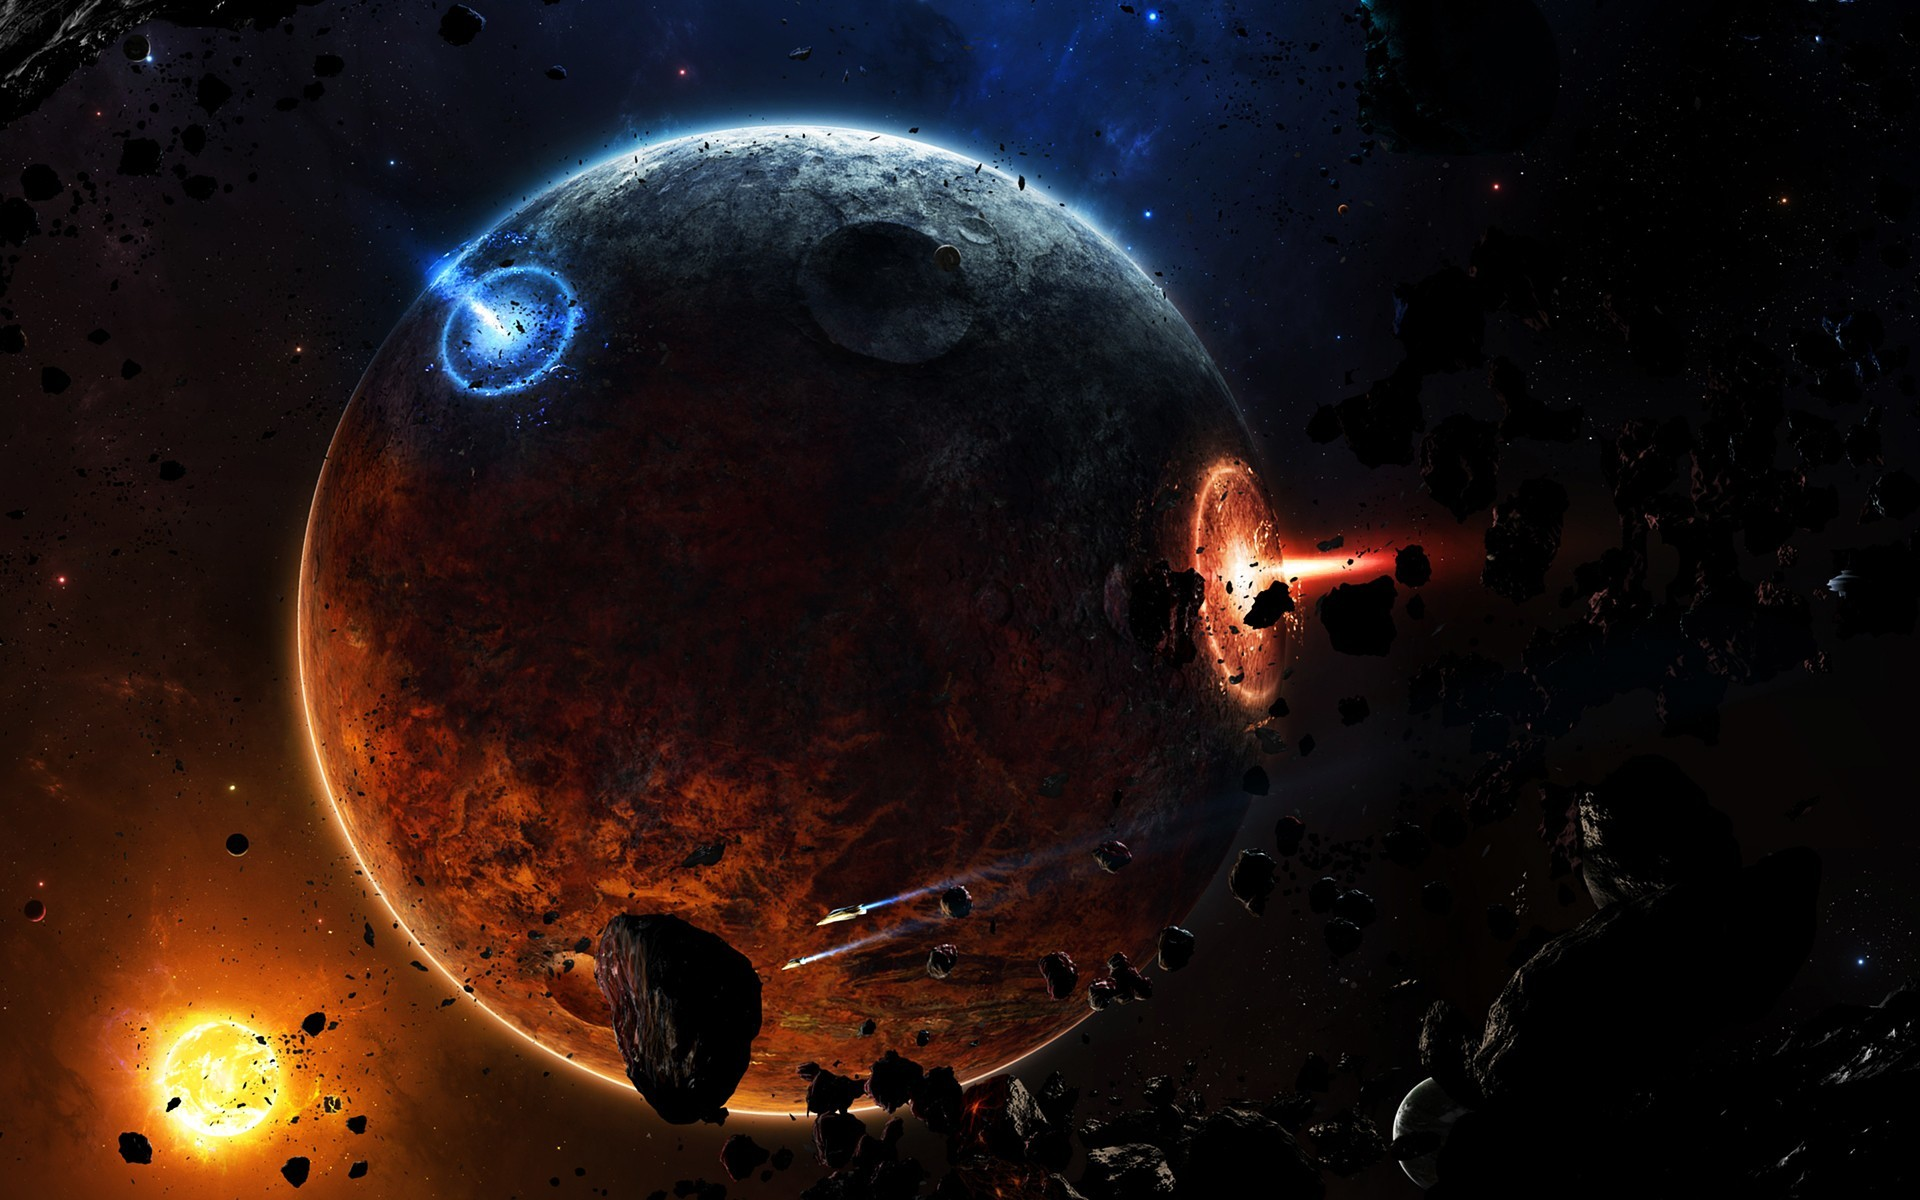 Image – Outer Space Planets Hd Background Wallpaper 29 HD Wallpapers.jpg |  Dragon Ball Z Role Playing Wiki | FANDOM powered by Wikia